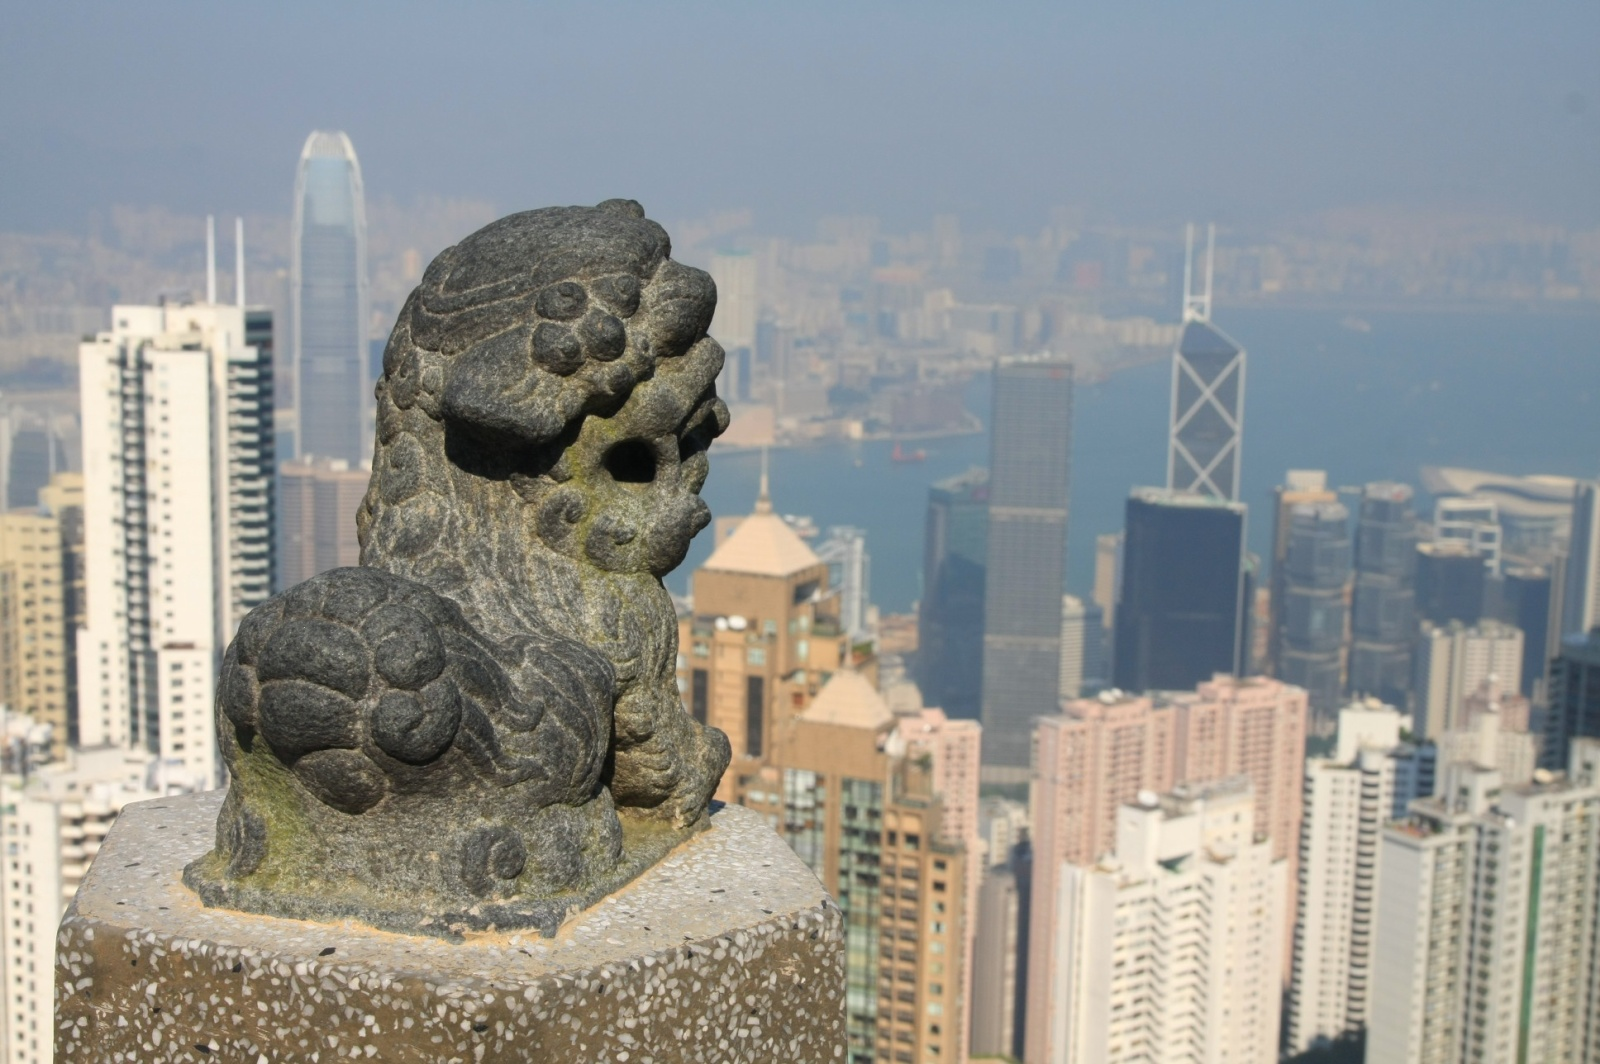 Lions seemingly protectively overlooking the Great Urban Jungle